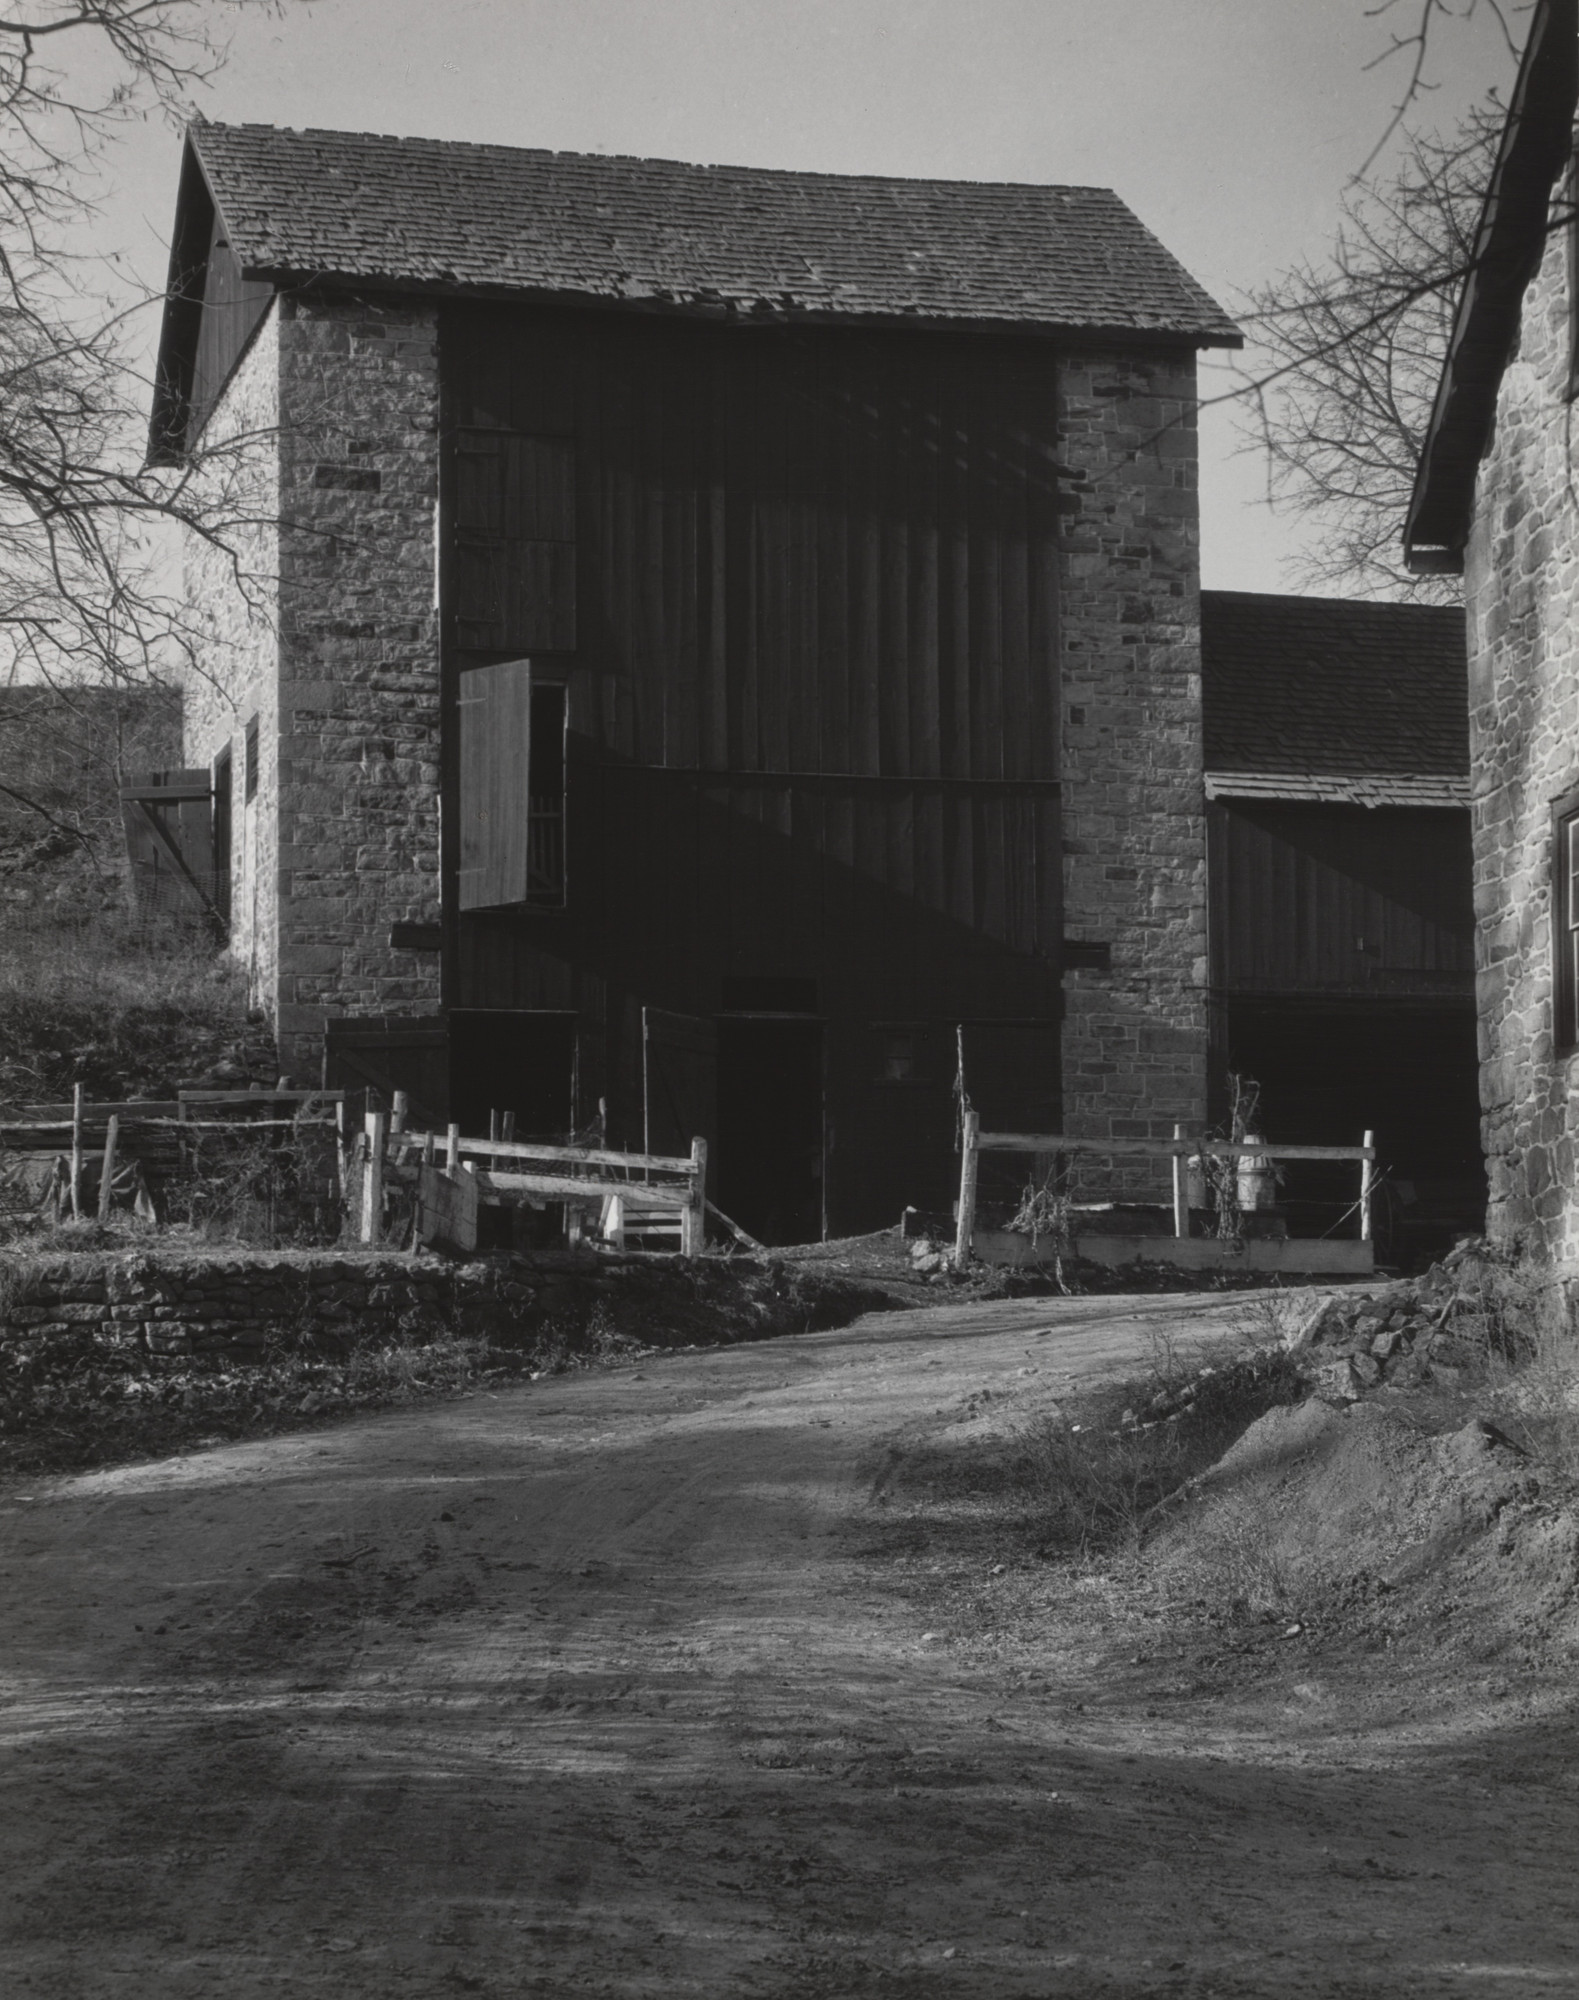 Charles Sheeler. Bucks County Barn. 1914-17